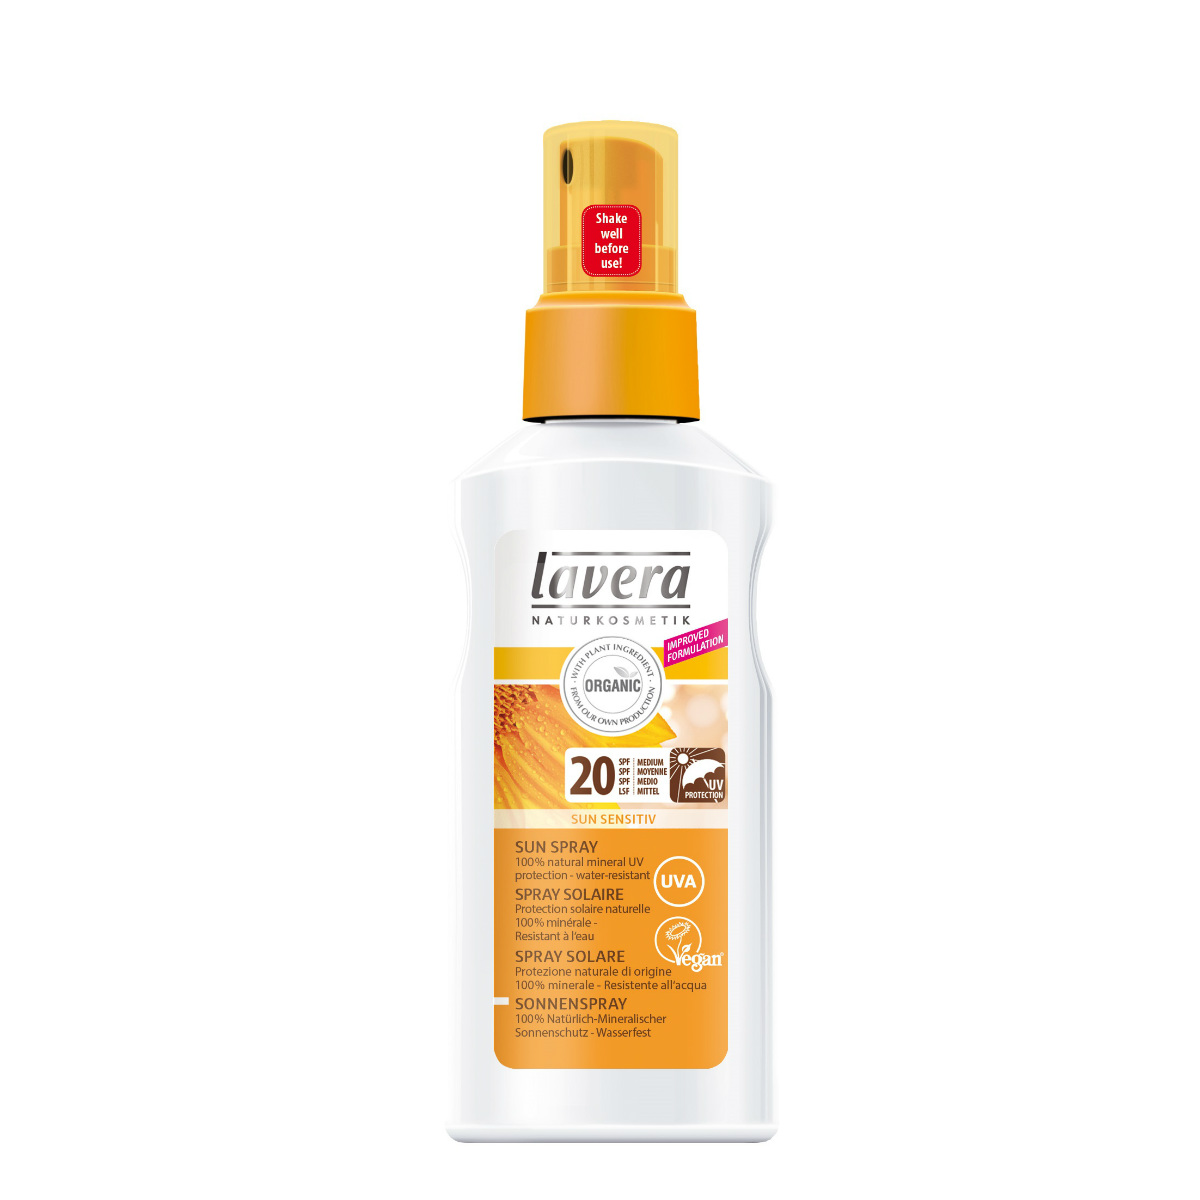 Lavera_SUN_Spray SPF 20 2